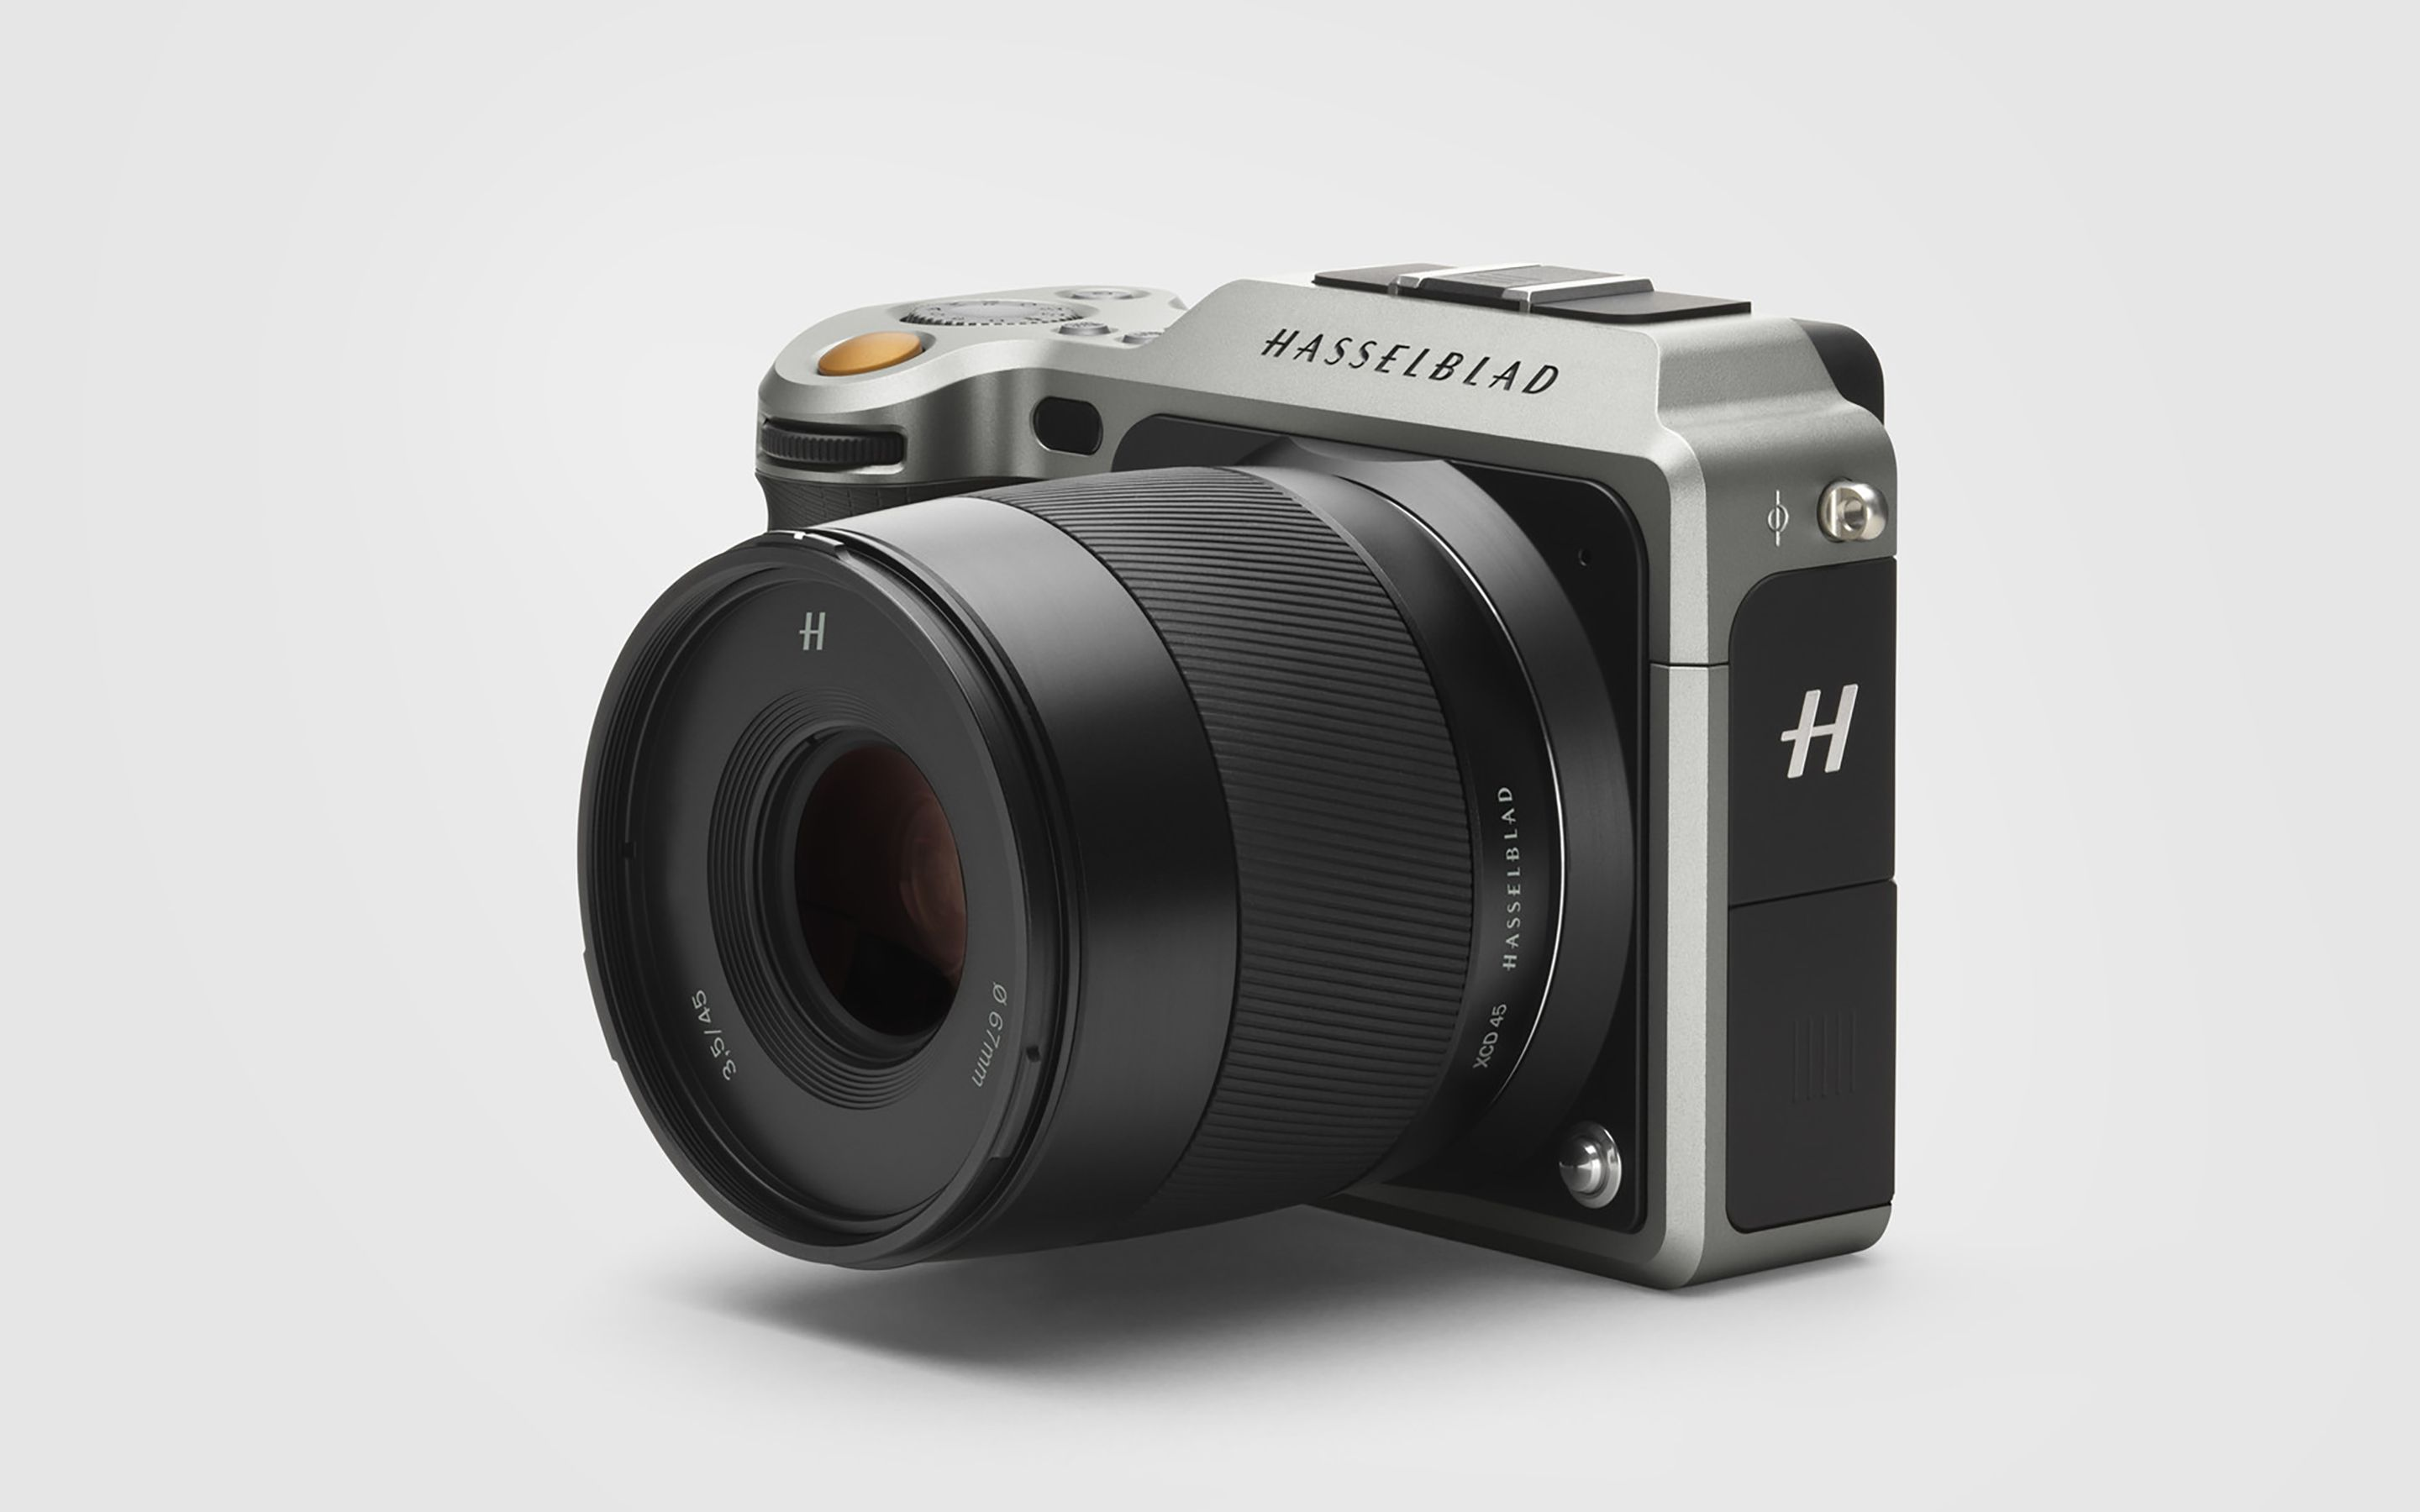 Hands On Review The Hasselblad X1d Digital Medium Format Medium Format Camera Sony Camera Digital Camera